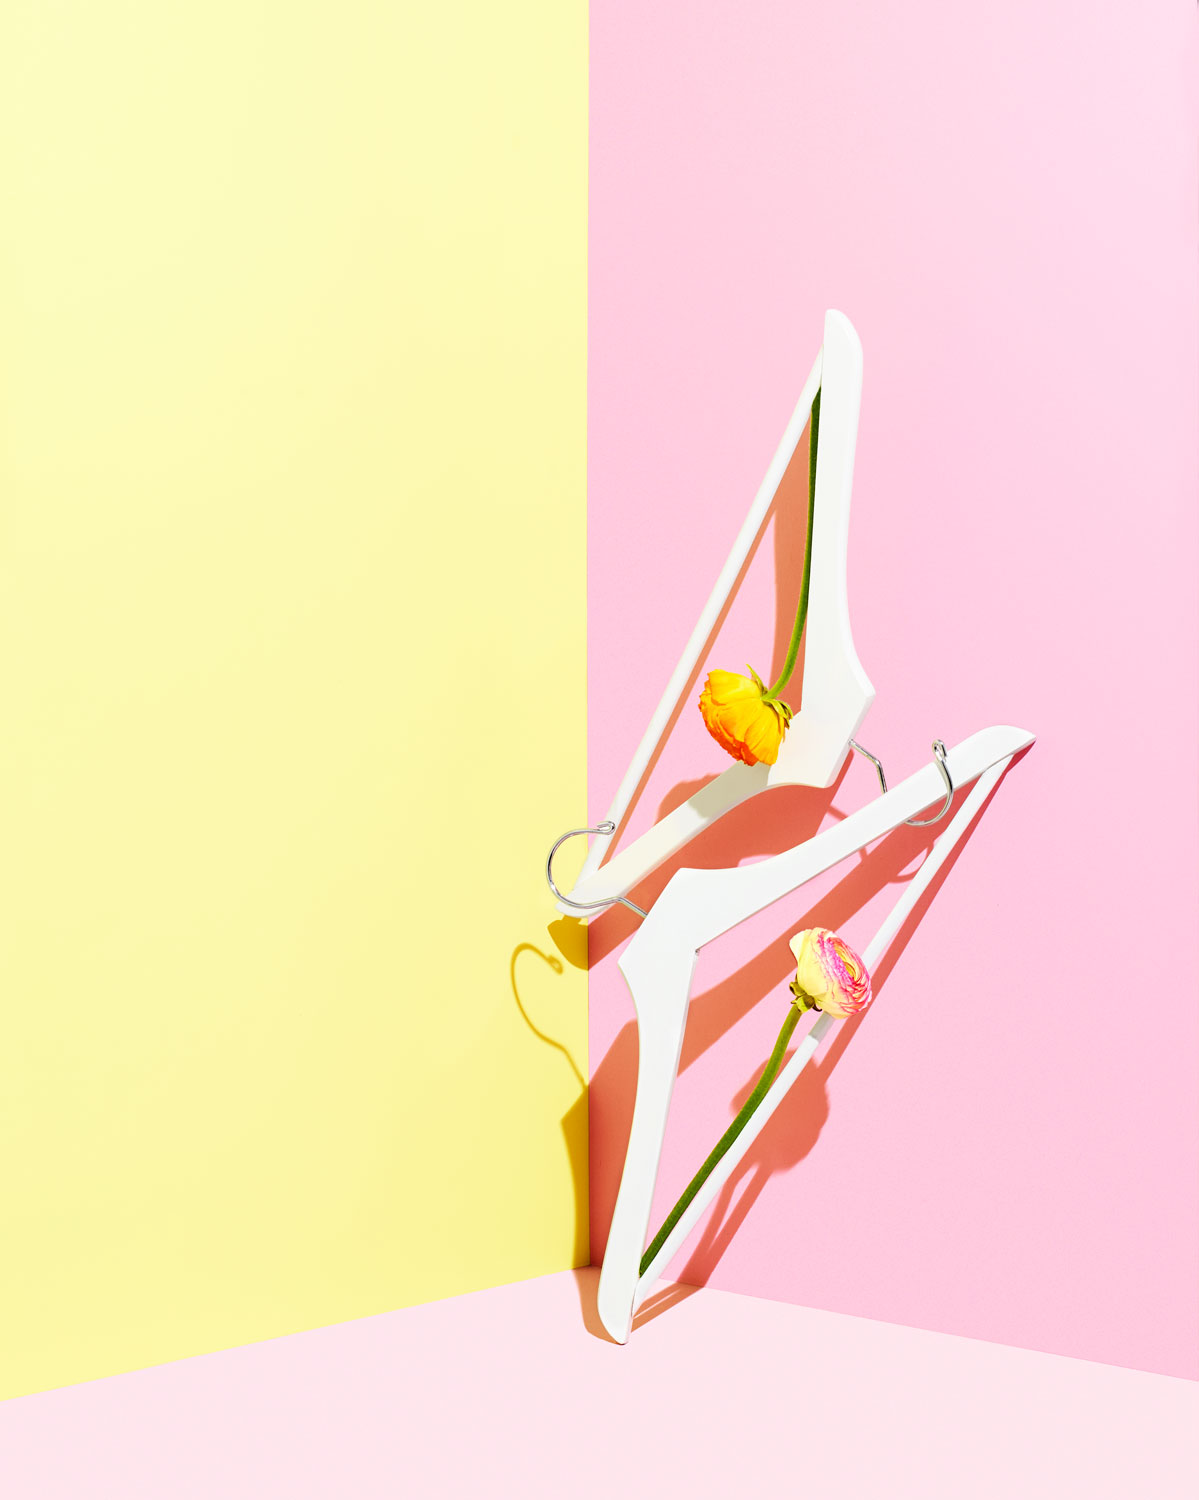 Hangers on pink and yellow background